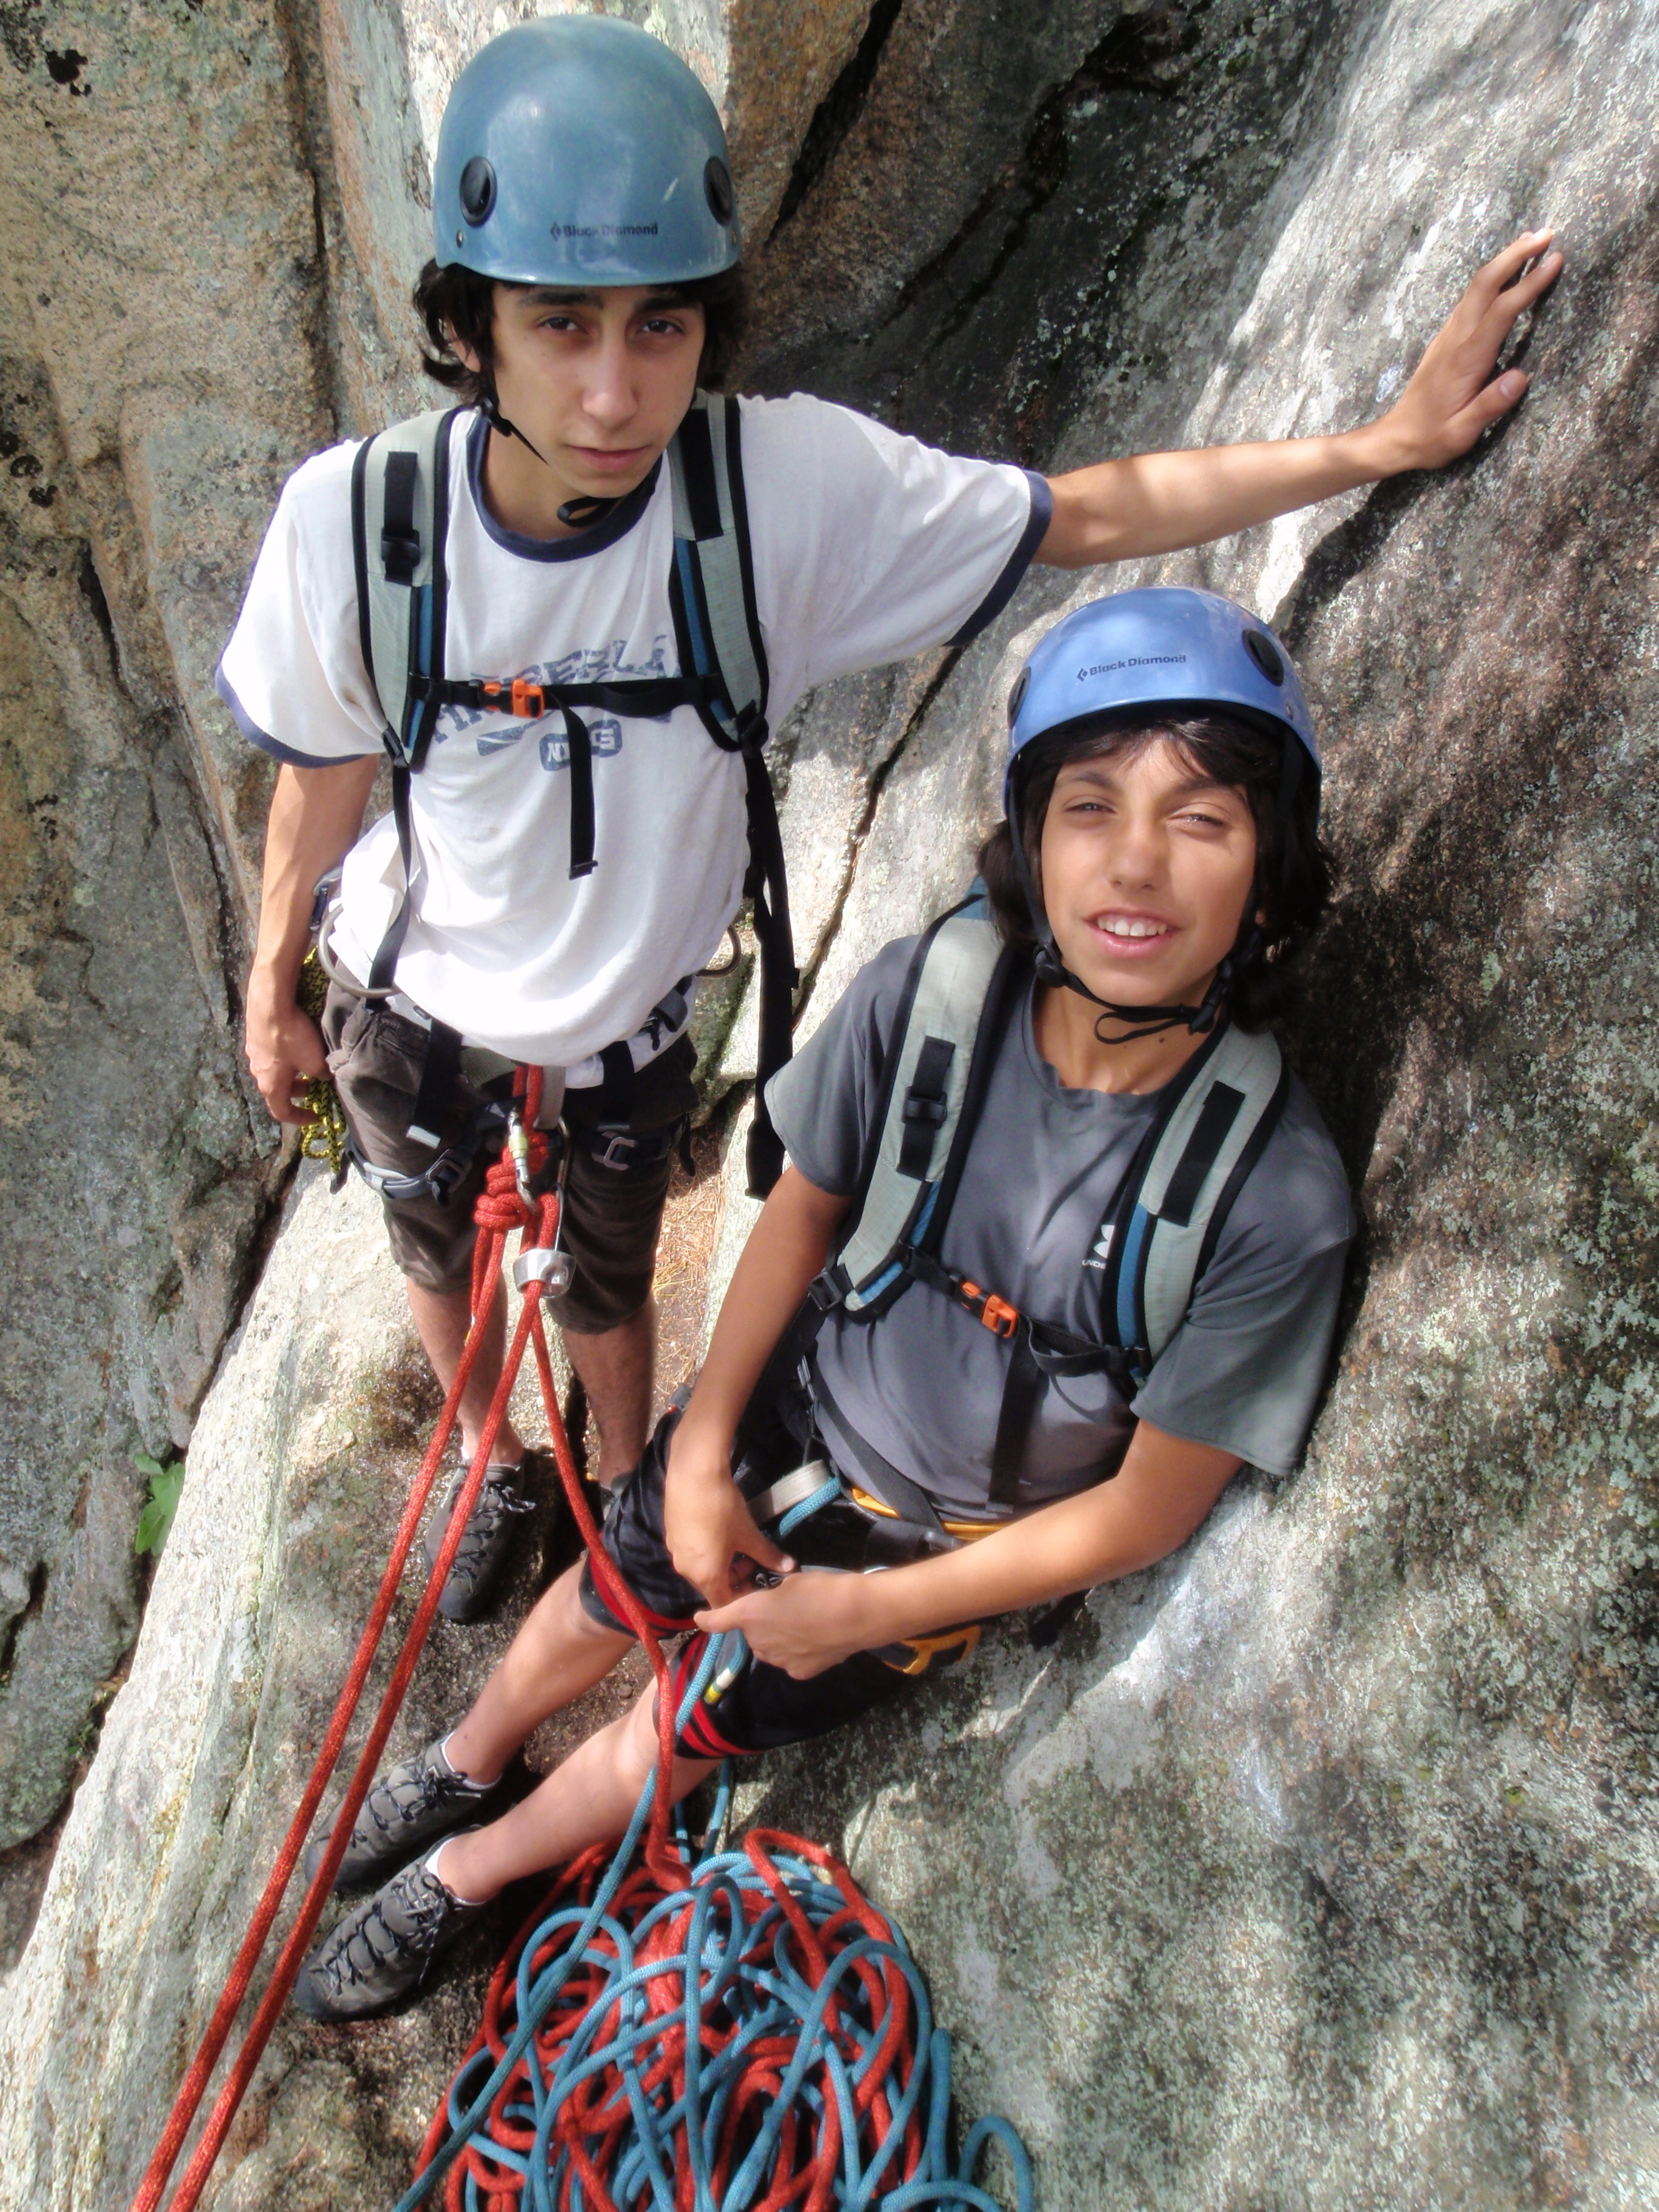 Mike and Andy at the 2nd Belay Ledge...